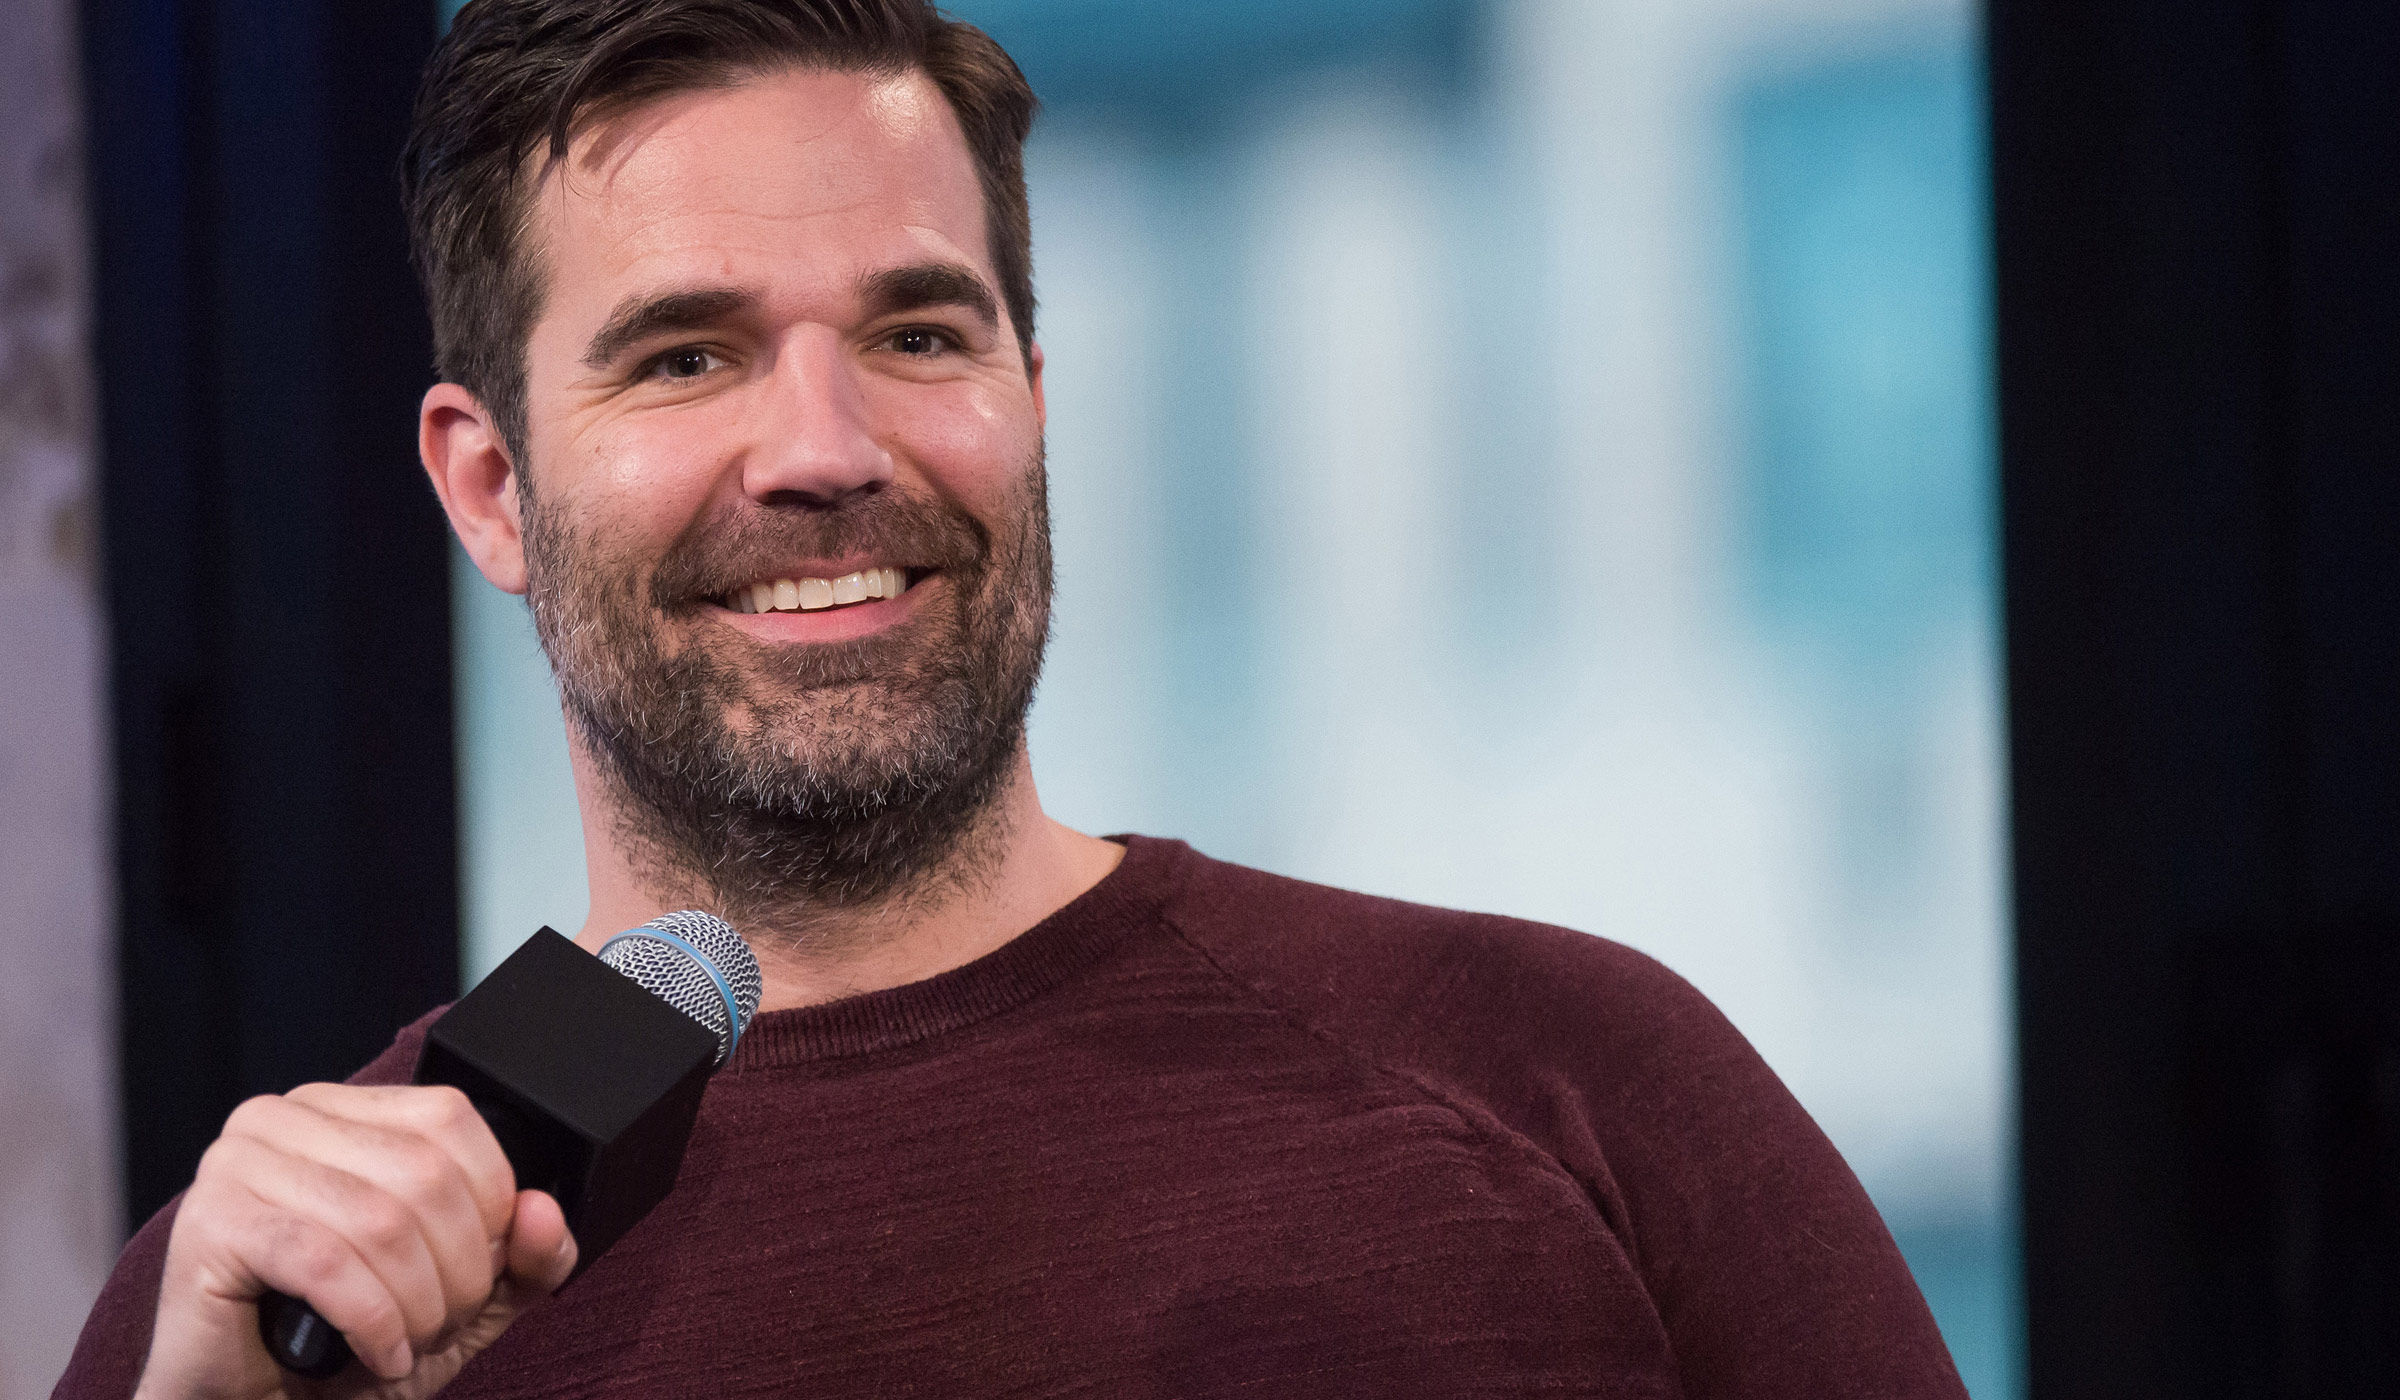 Rob Delaney and His Son's Cancer